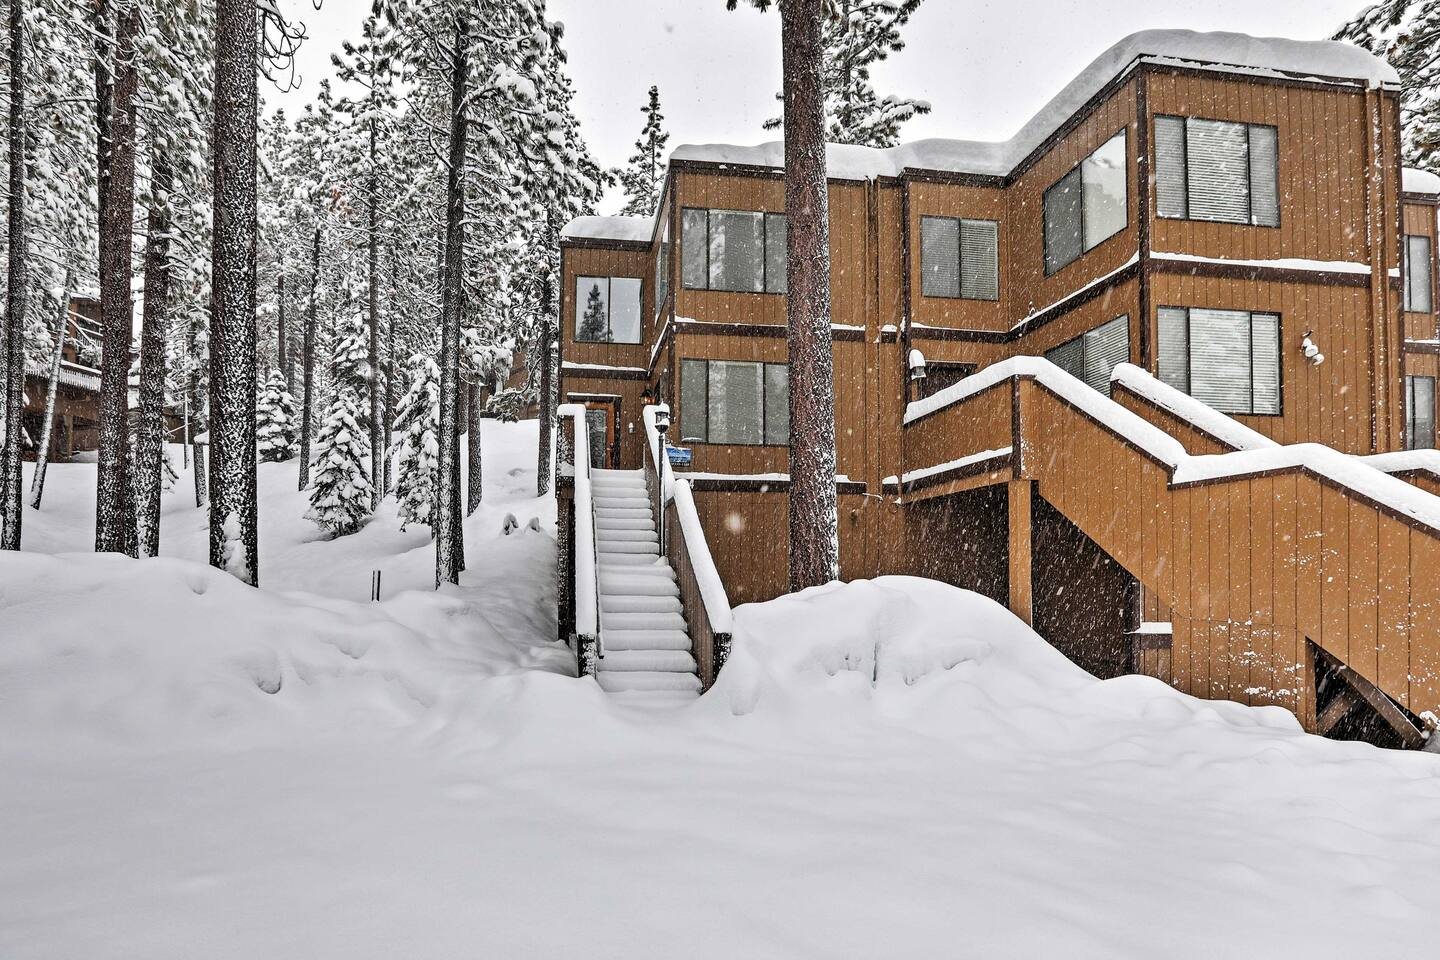 This condo is ideally located, just 2 minutes from downtown South Lake Tahoe!